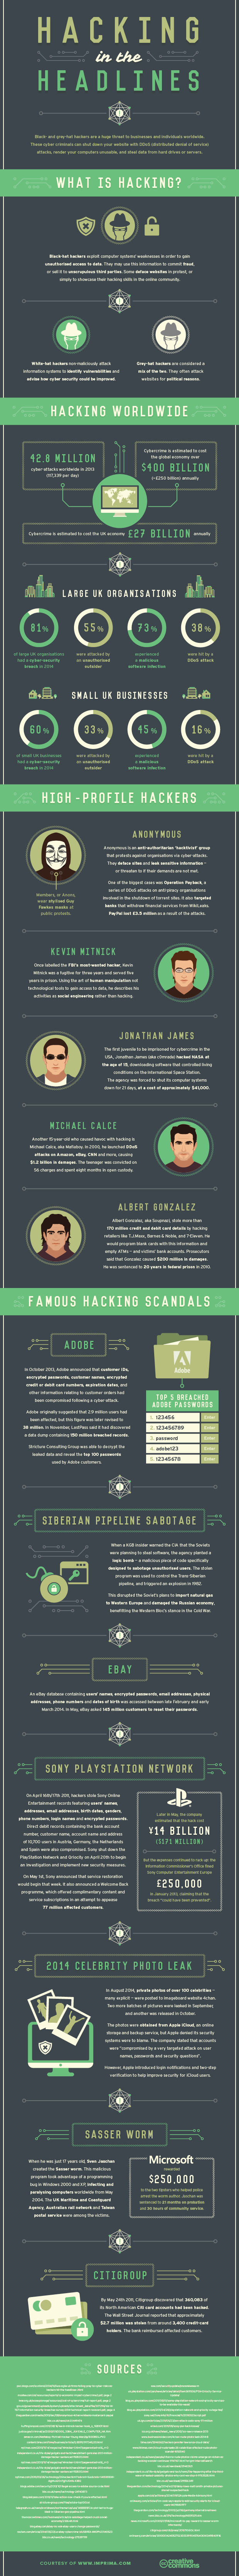 Infographic - hacking in the headlines